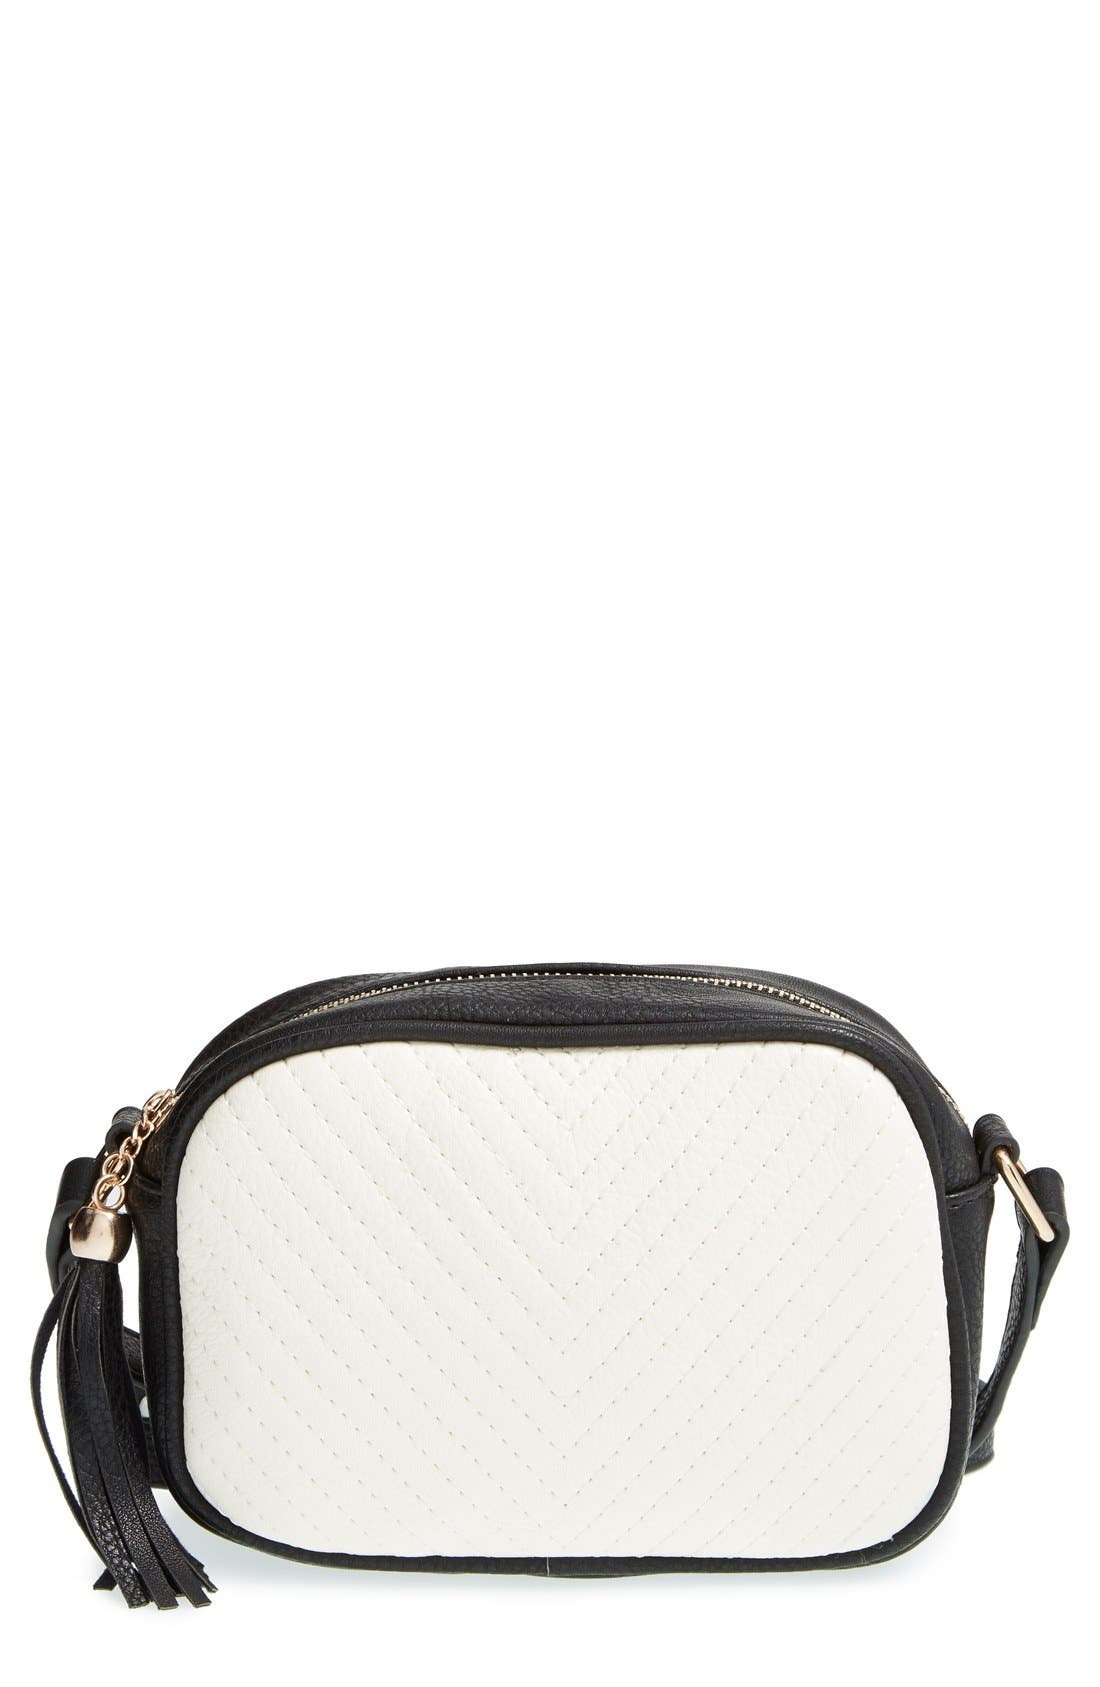 Alternate Image 1 Selected - Street Level Tassel Crossbody Bag